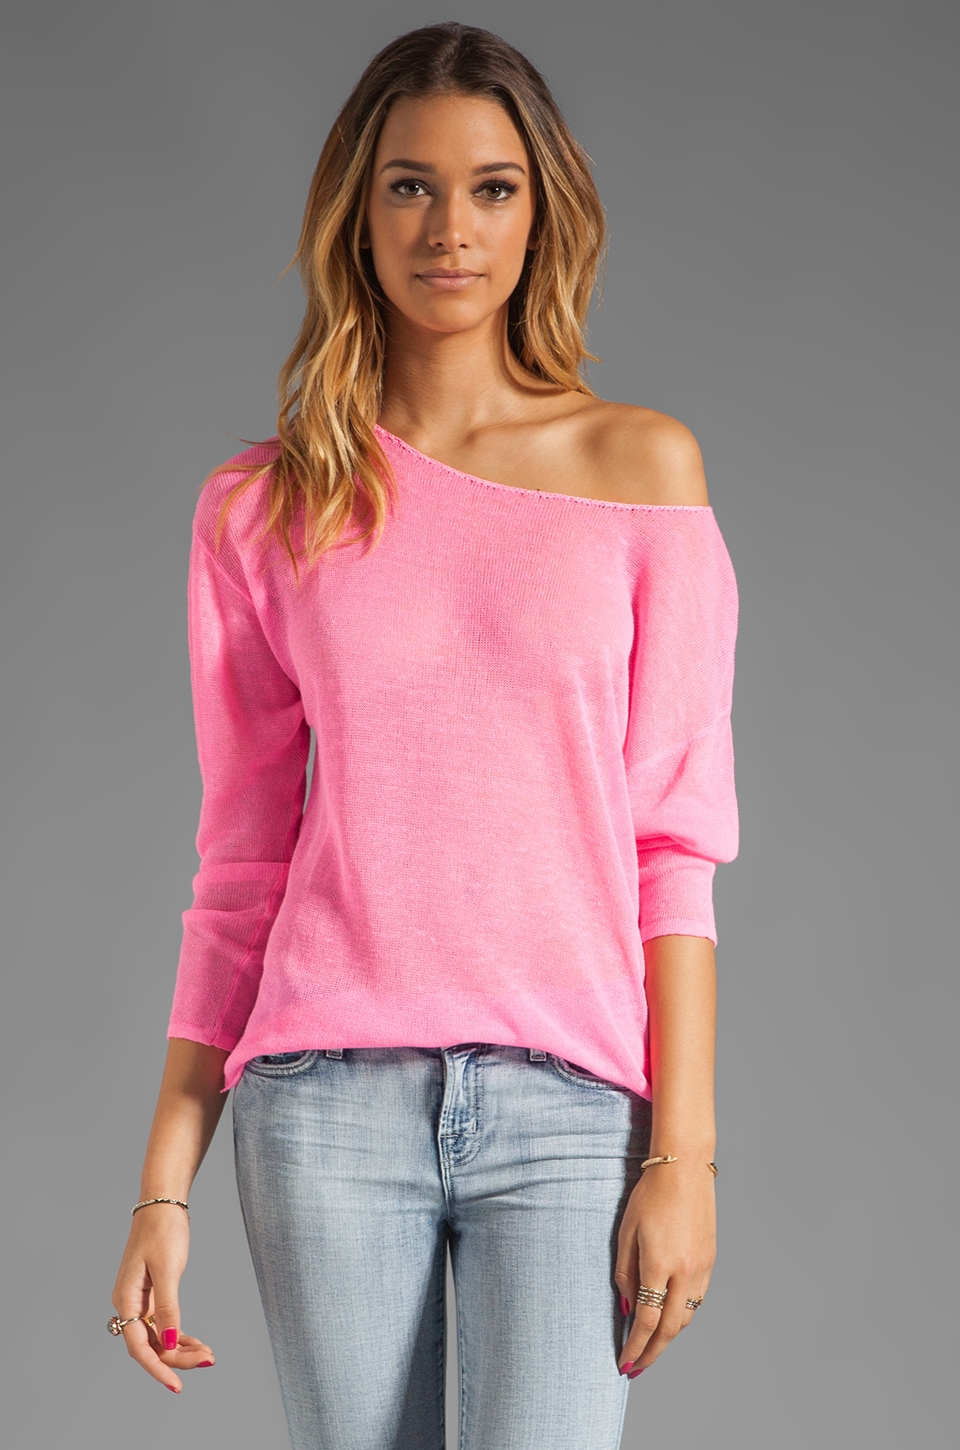 Feel the Piece Boat Neck Sweater in Neon Pink